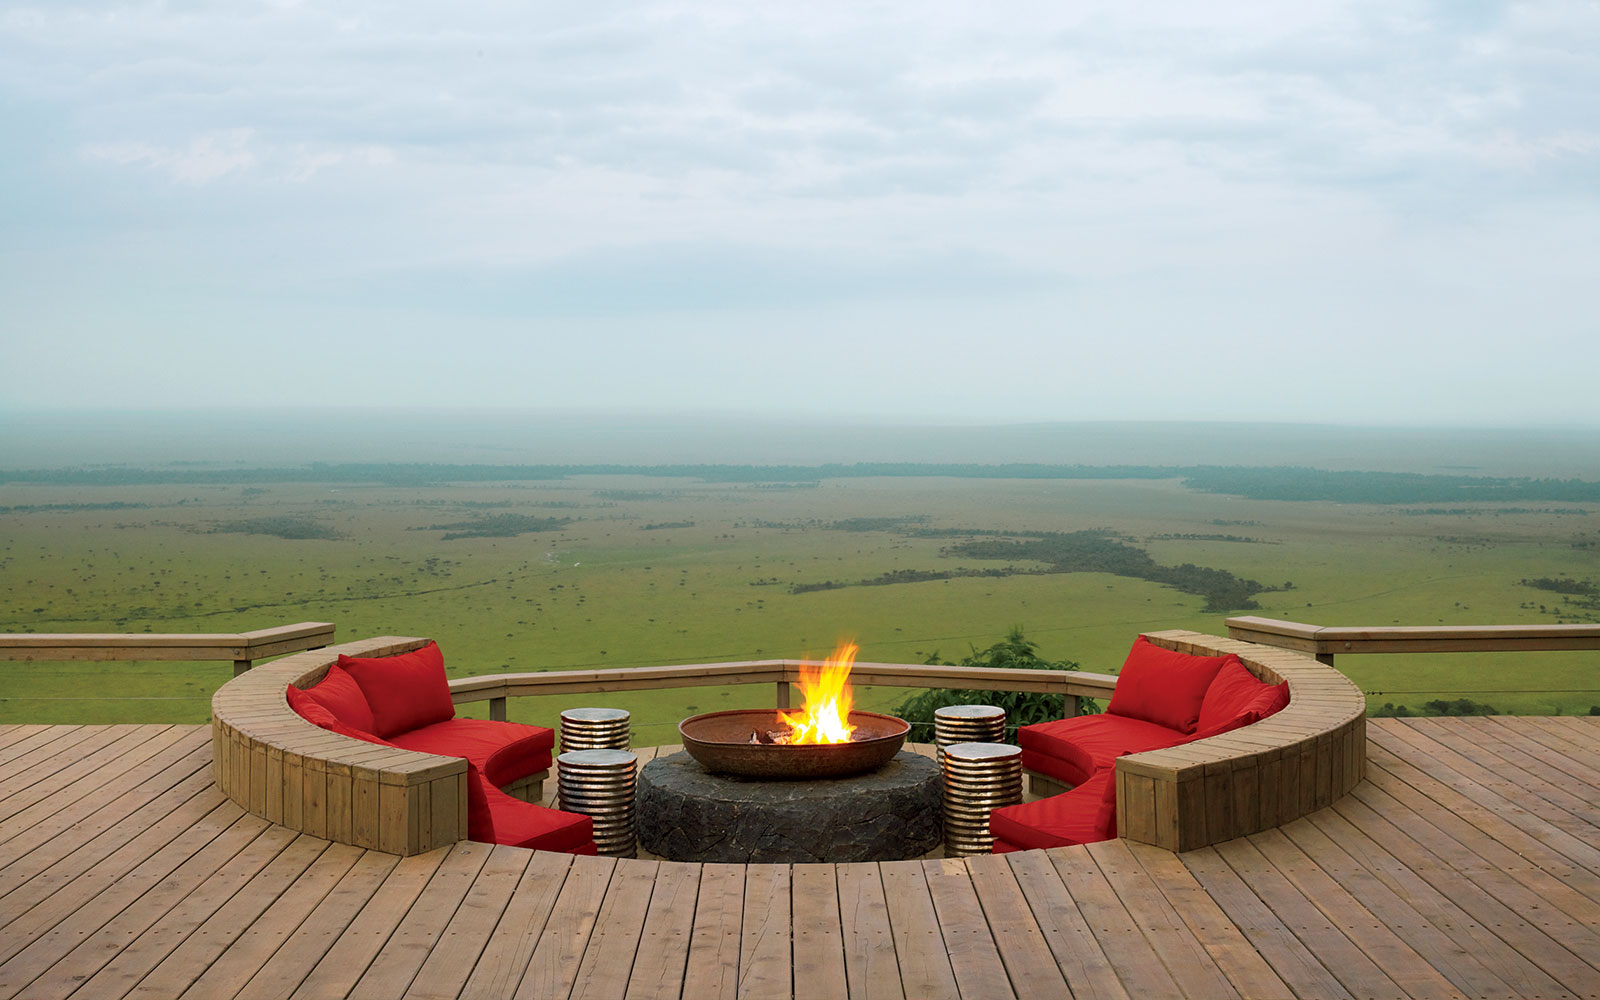 The Barazza at Angama Mara's guest area where guests can sit and enjoy the view